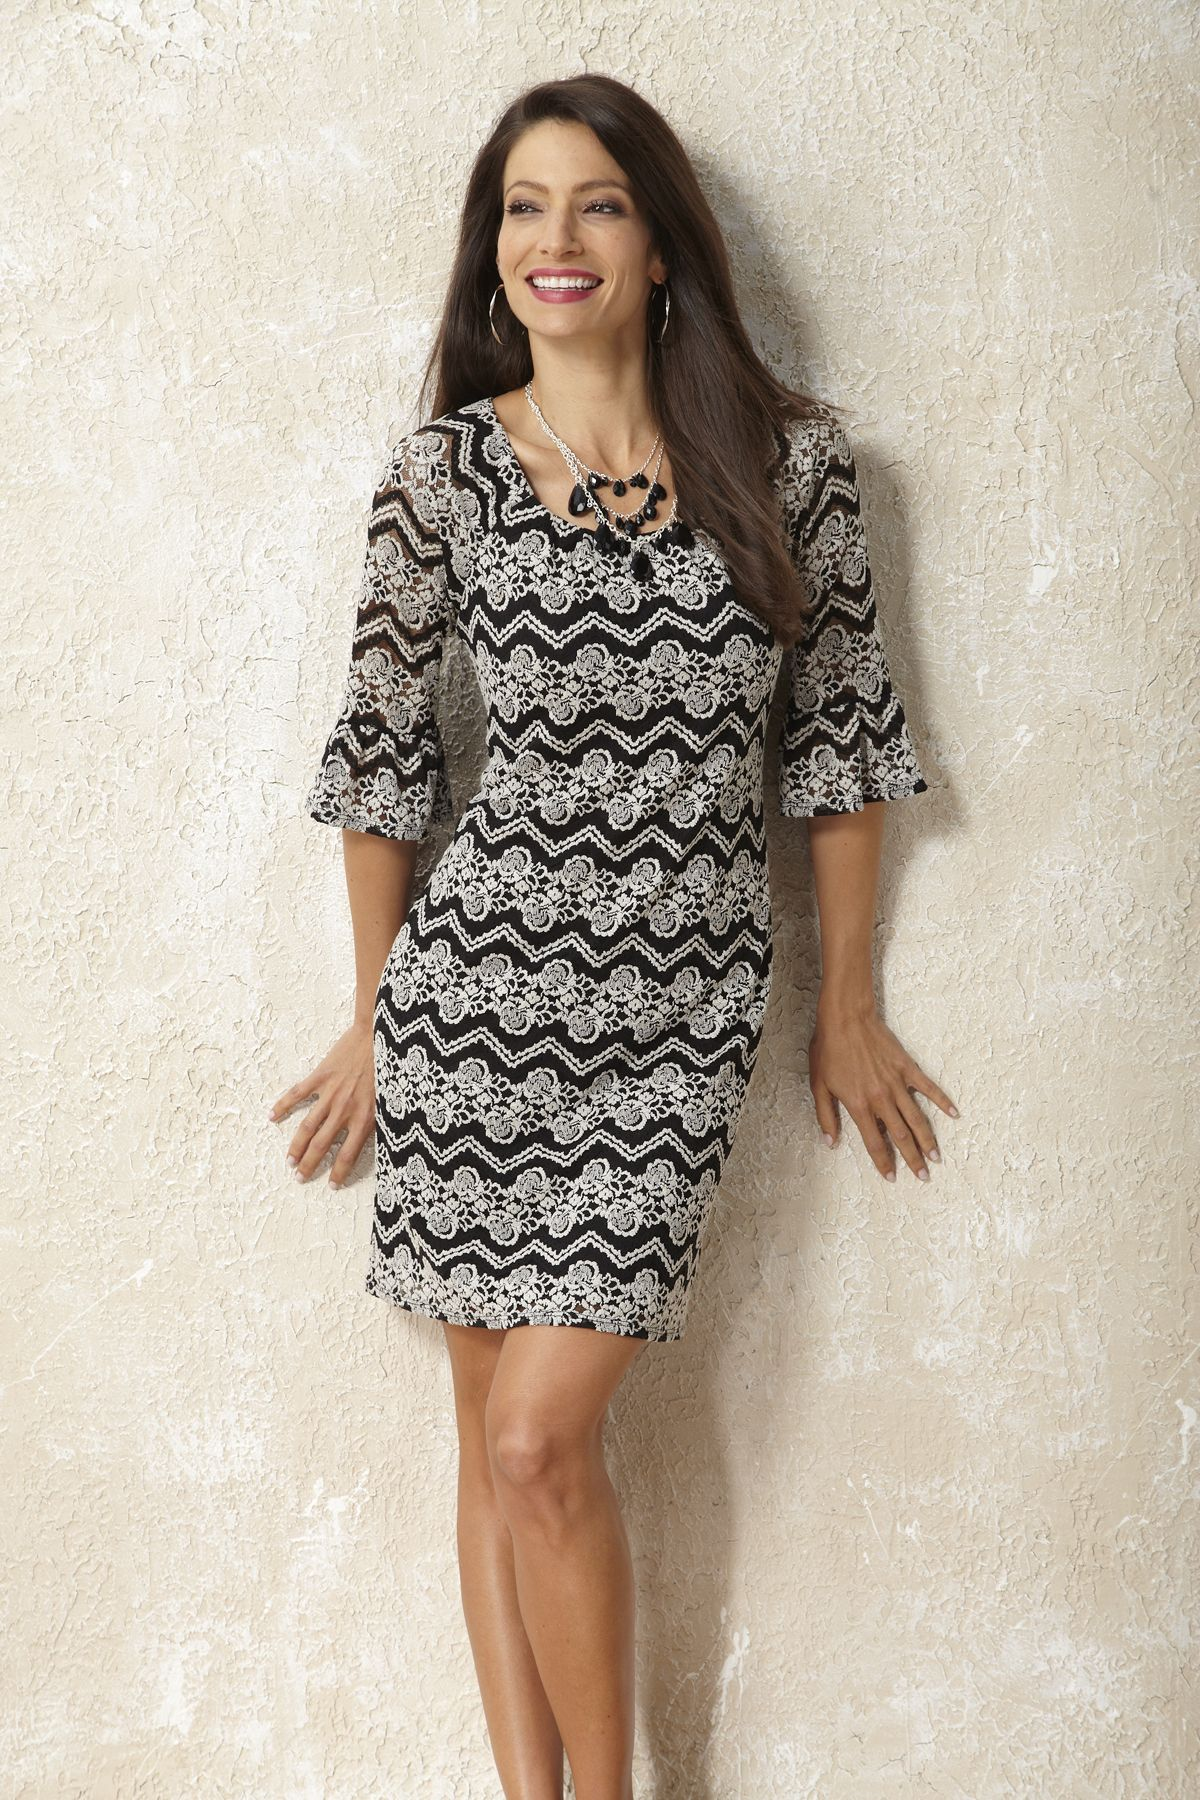 Black & White Floral Lace Dress #fall #fashion #beallsflorida